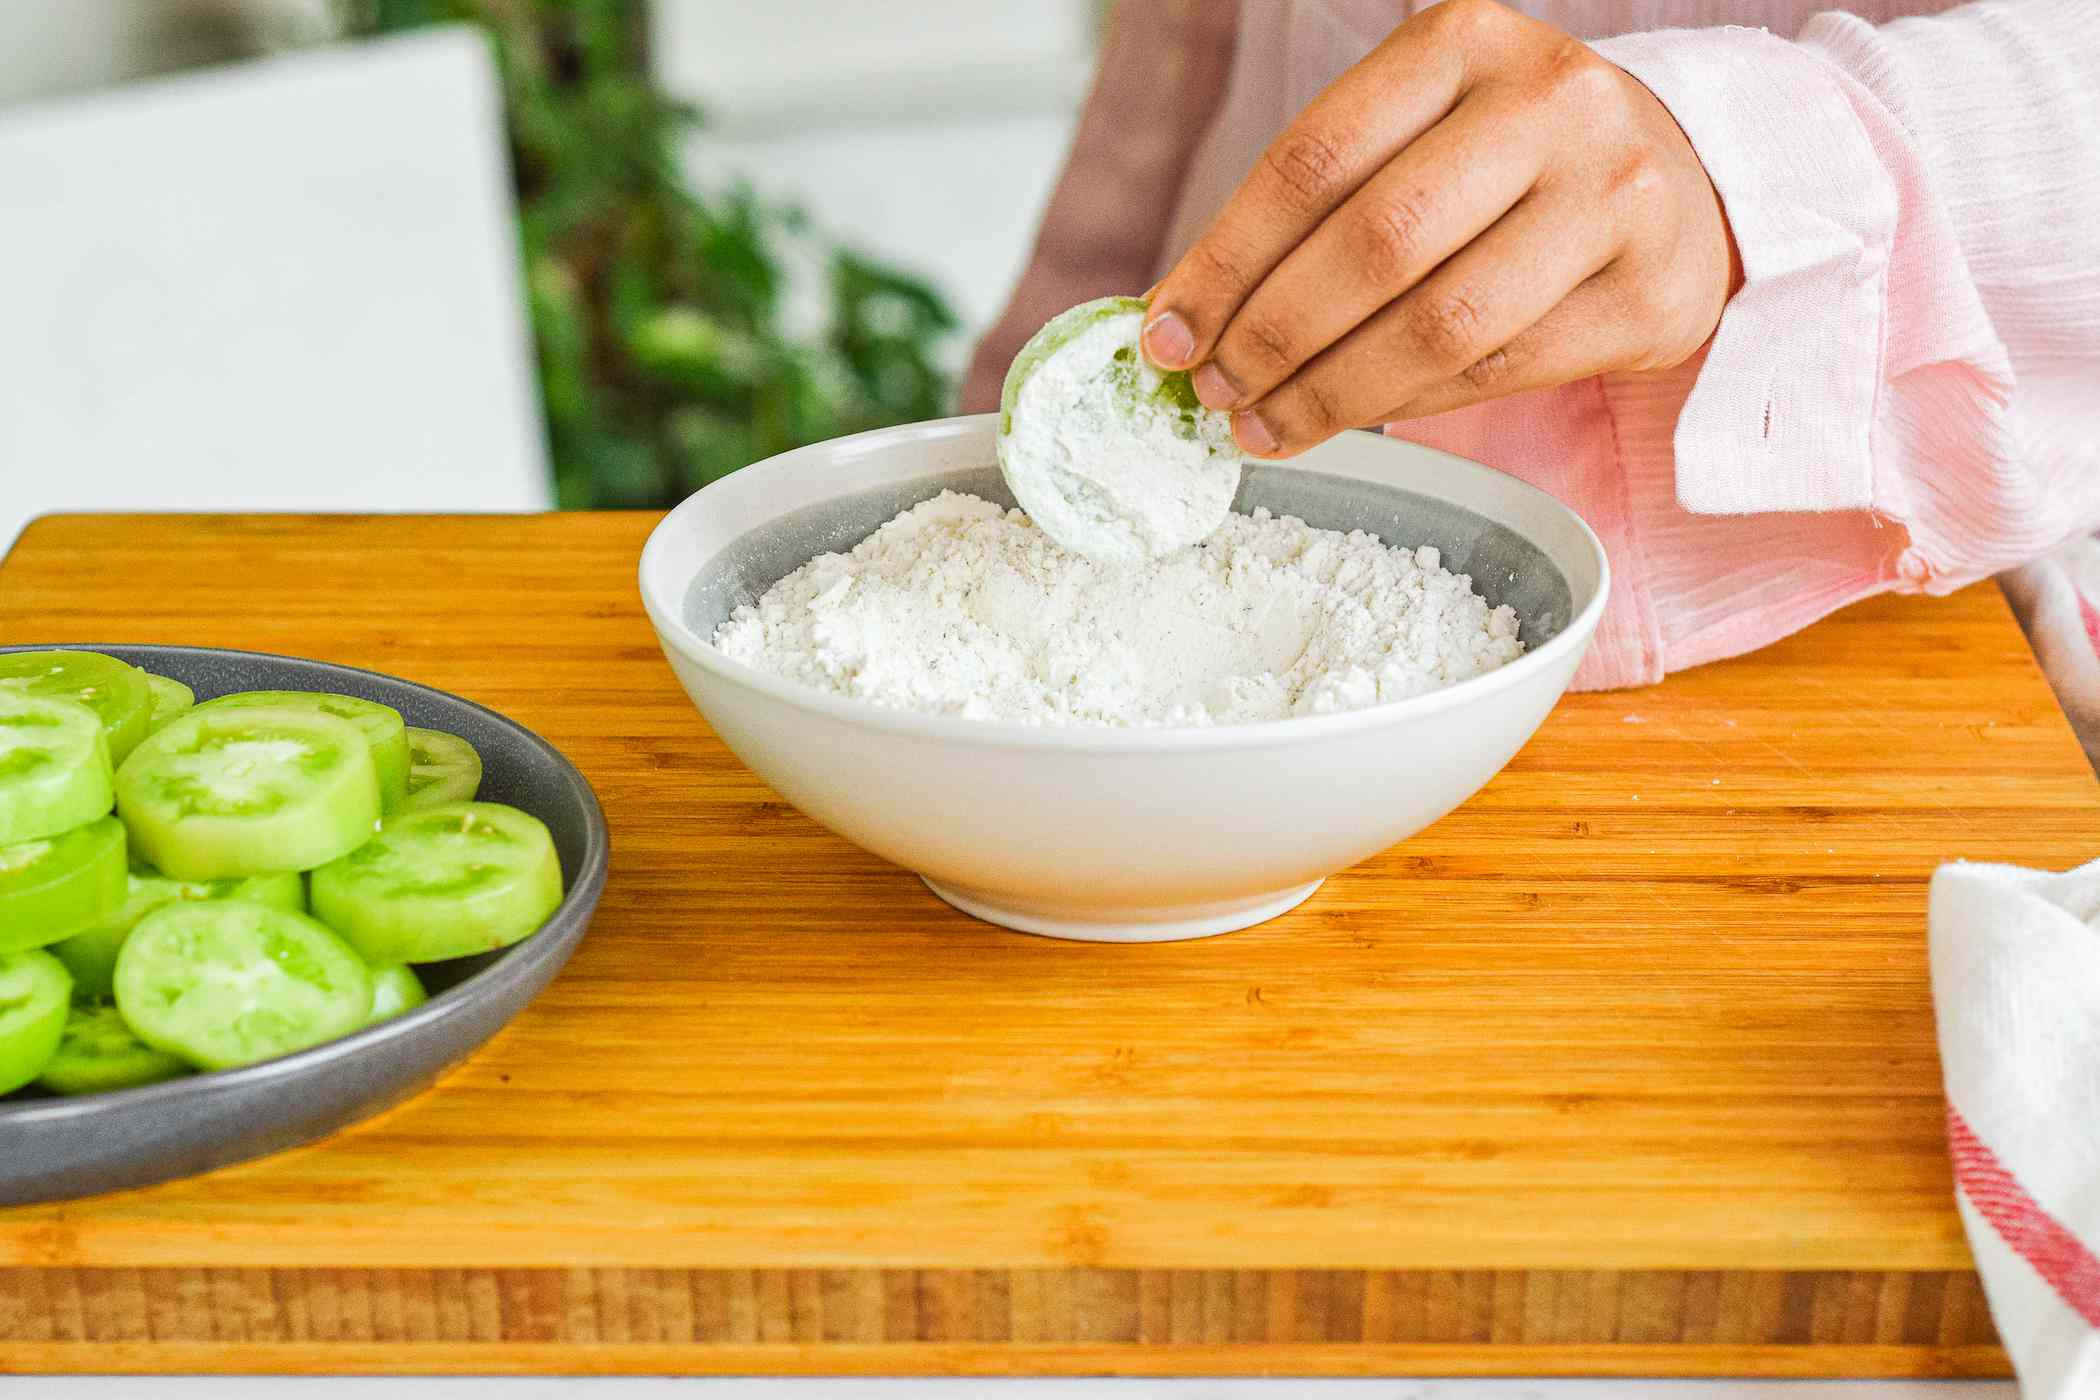 Dipping green tomatoes in flour mixture.